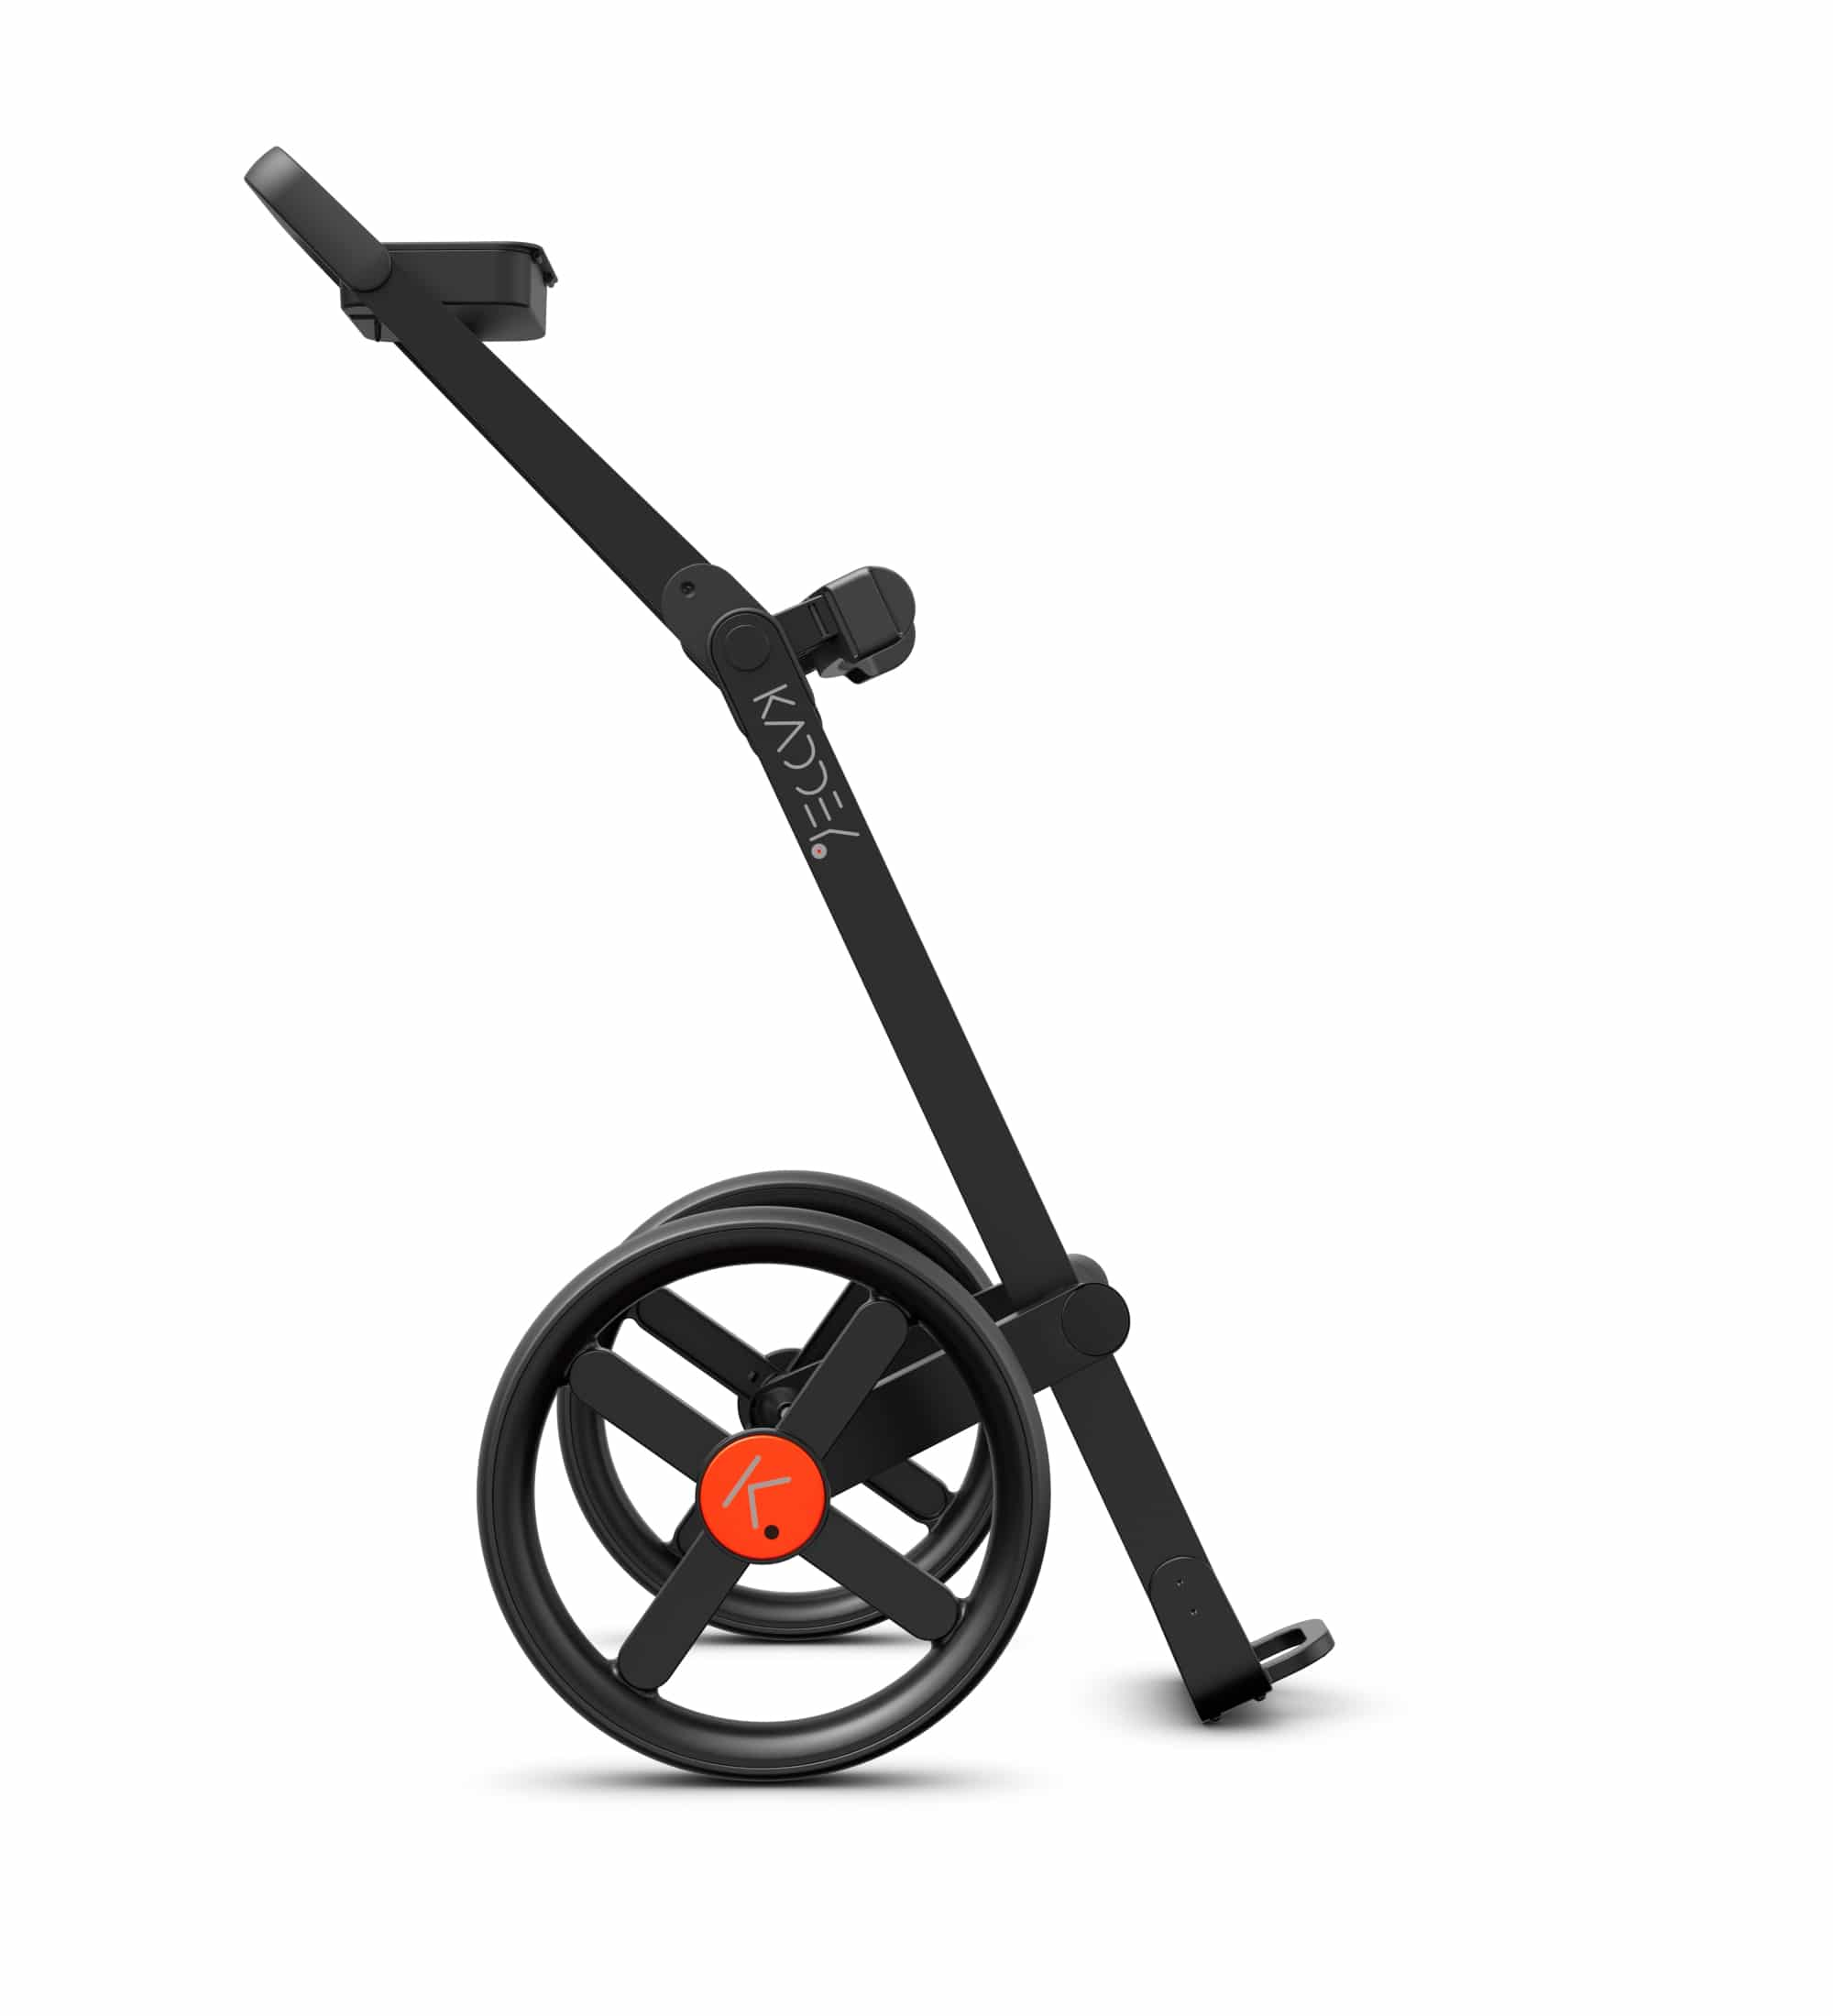 Kaddey Switch - Push pull trolley - Orange - Side